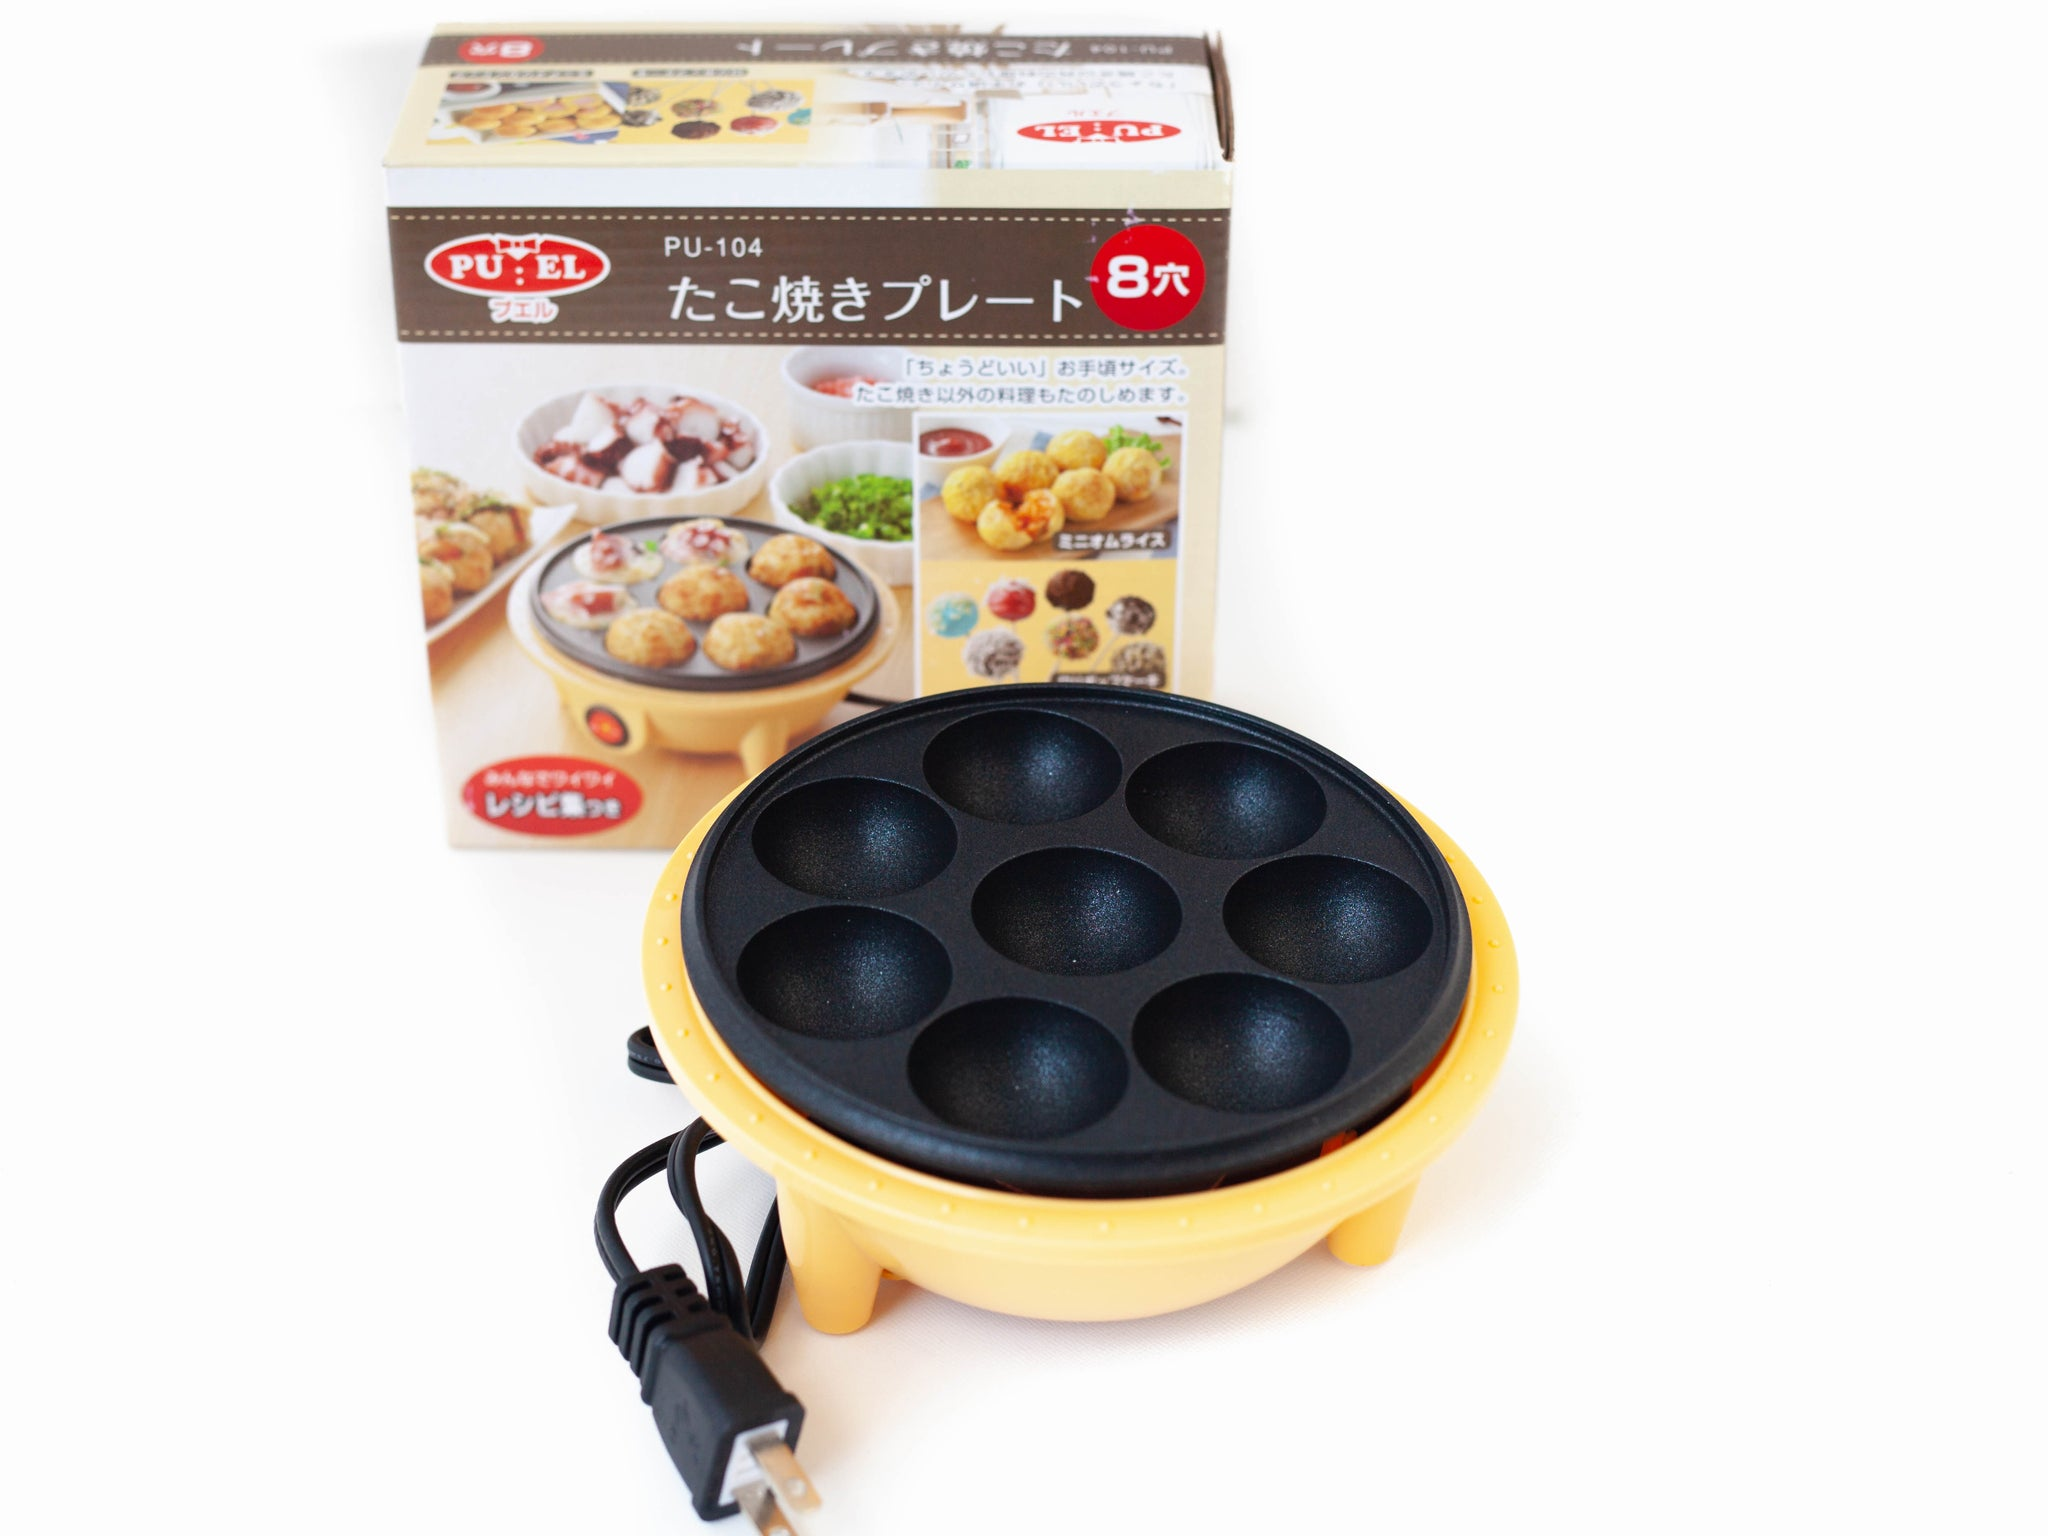 Takoyaki Bundle by Bento&co Bundles - Bento&co Japanese Bento Lunch Boxes and Kitchenware Specialists